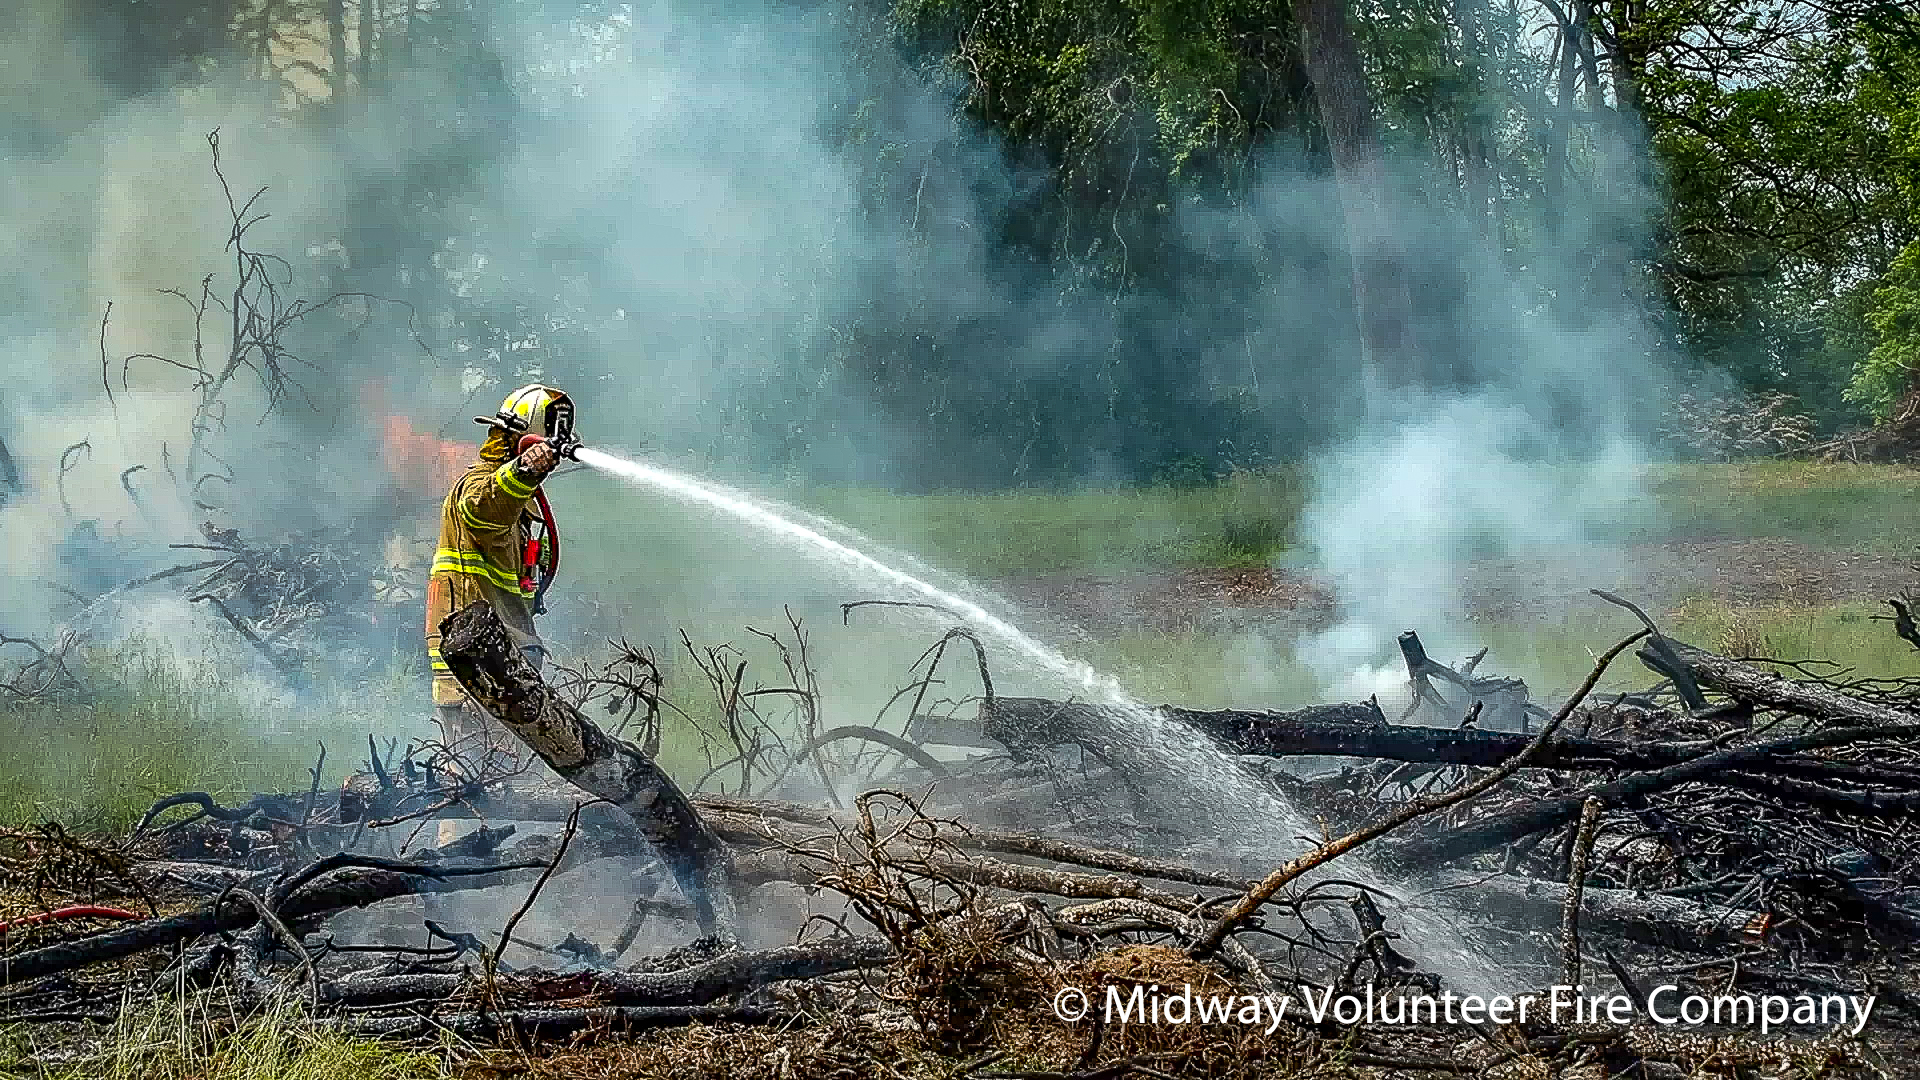 2019.06.01 - Midway's Field Truck 5 responded to the report of a brush fire on Upper Mountain Road. Upon arrival the Field 5 Crew assisted the land owner with containment of a controlled burn. Total time on the scene less than 20 minutes. No injuries were reported.